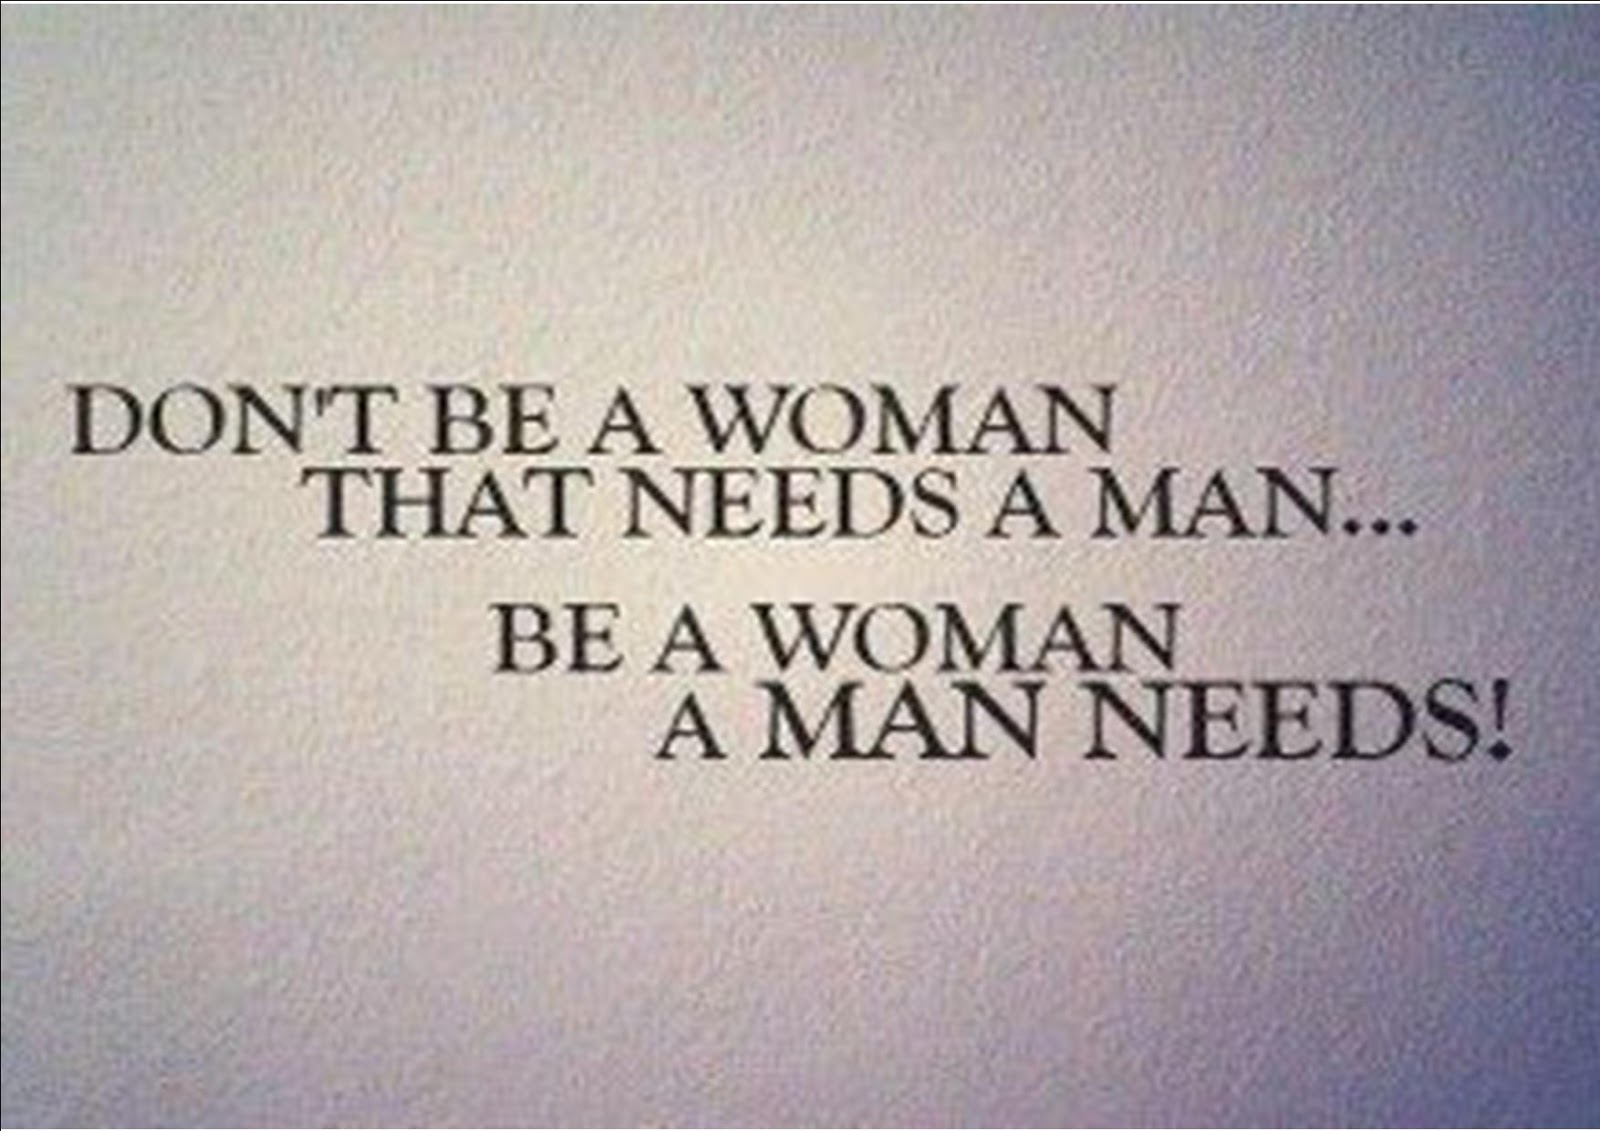 Positive Quotes For Women Women Quotes Tumblr About Men Pinterest Funny And Sayings Islam